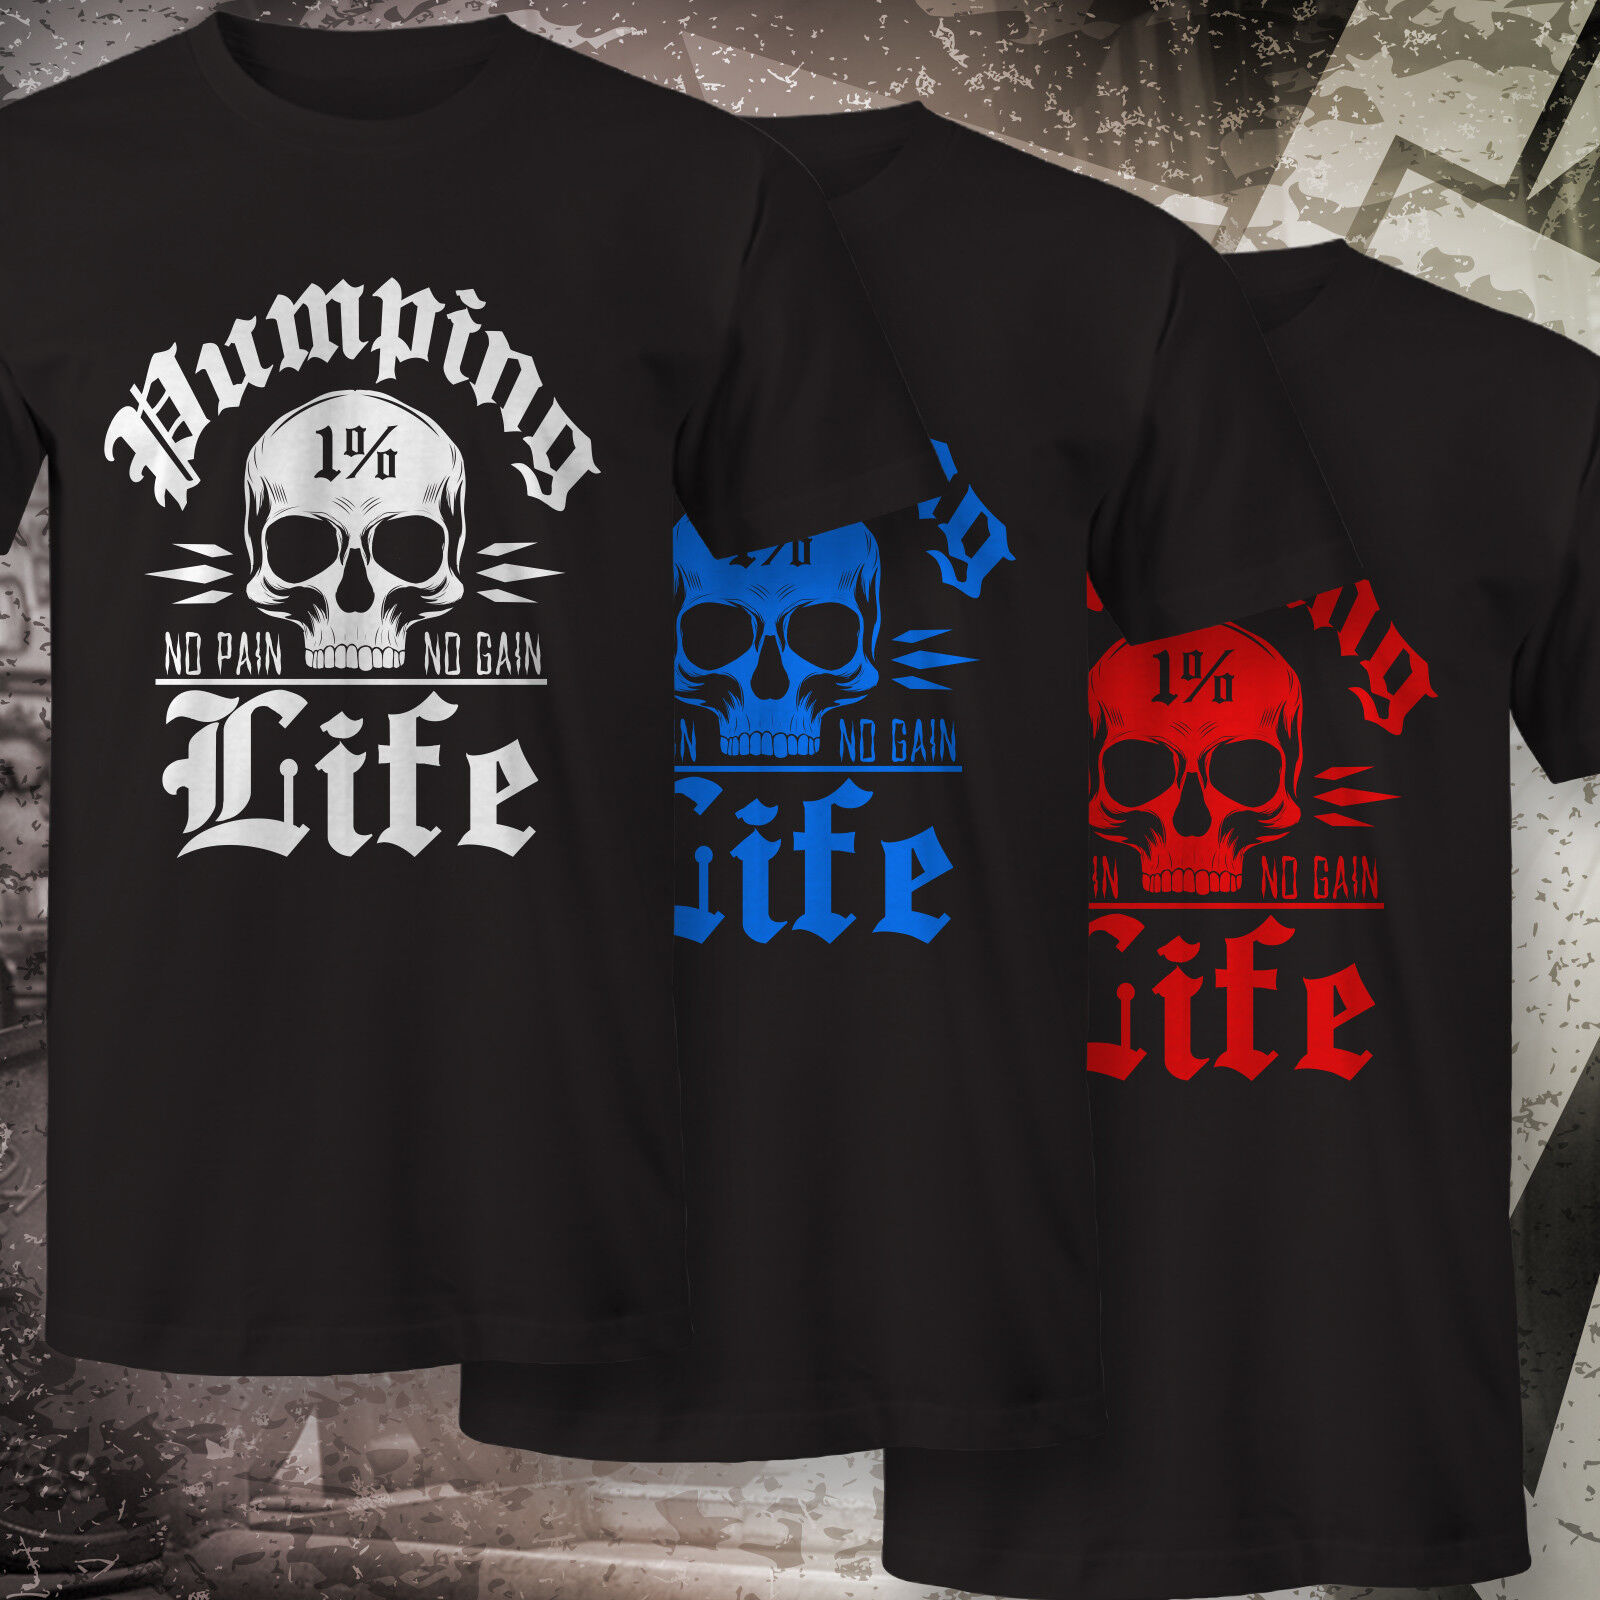 Pumping Life 1% No Pain No Gain T-Shirt Fitness Bodybuilding Athletic MMA